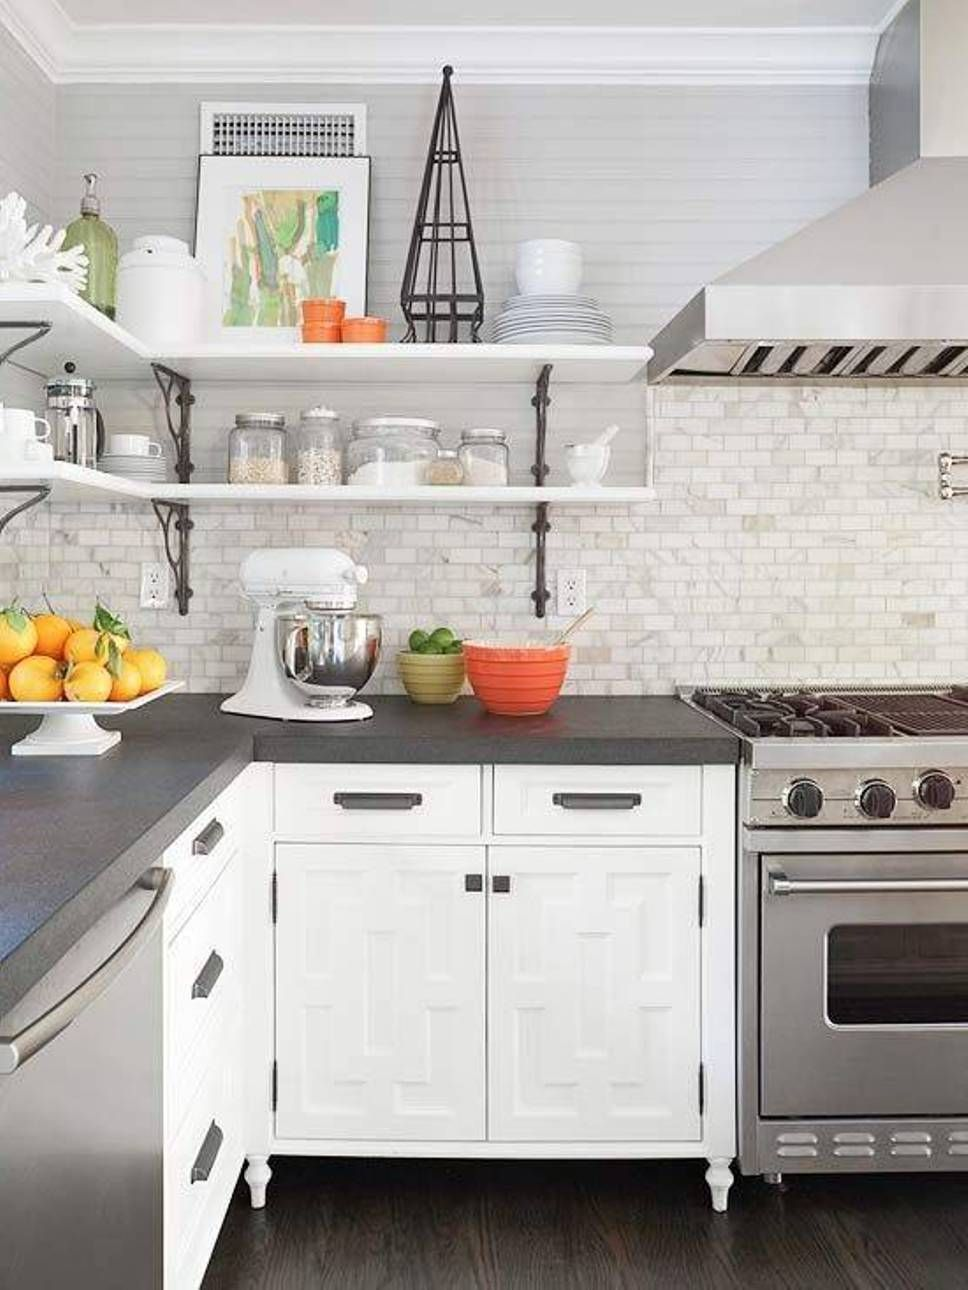 Countertop color in grey and white kitchen cabinets for for White and grey kitchen designs